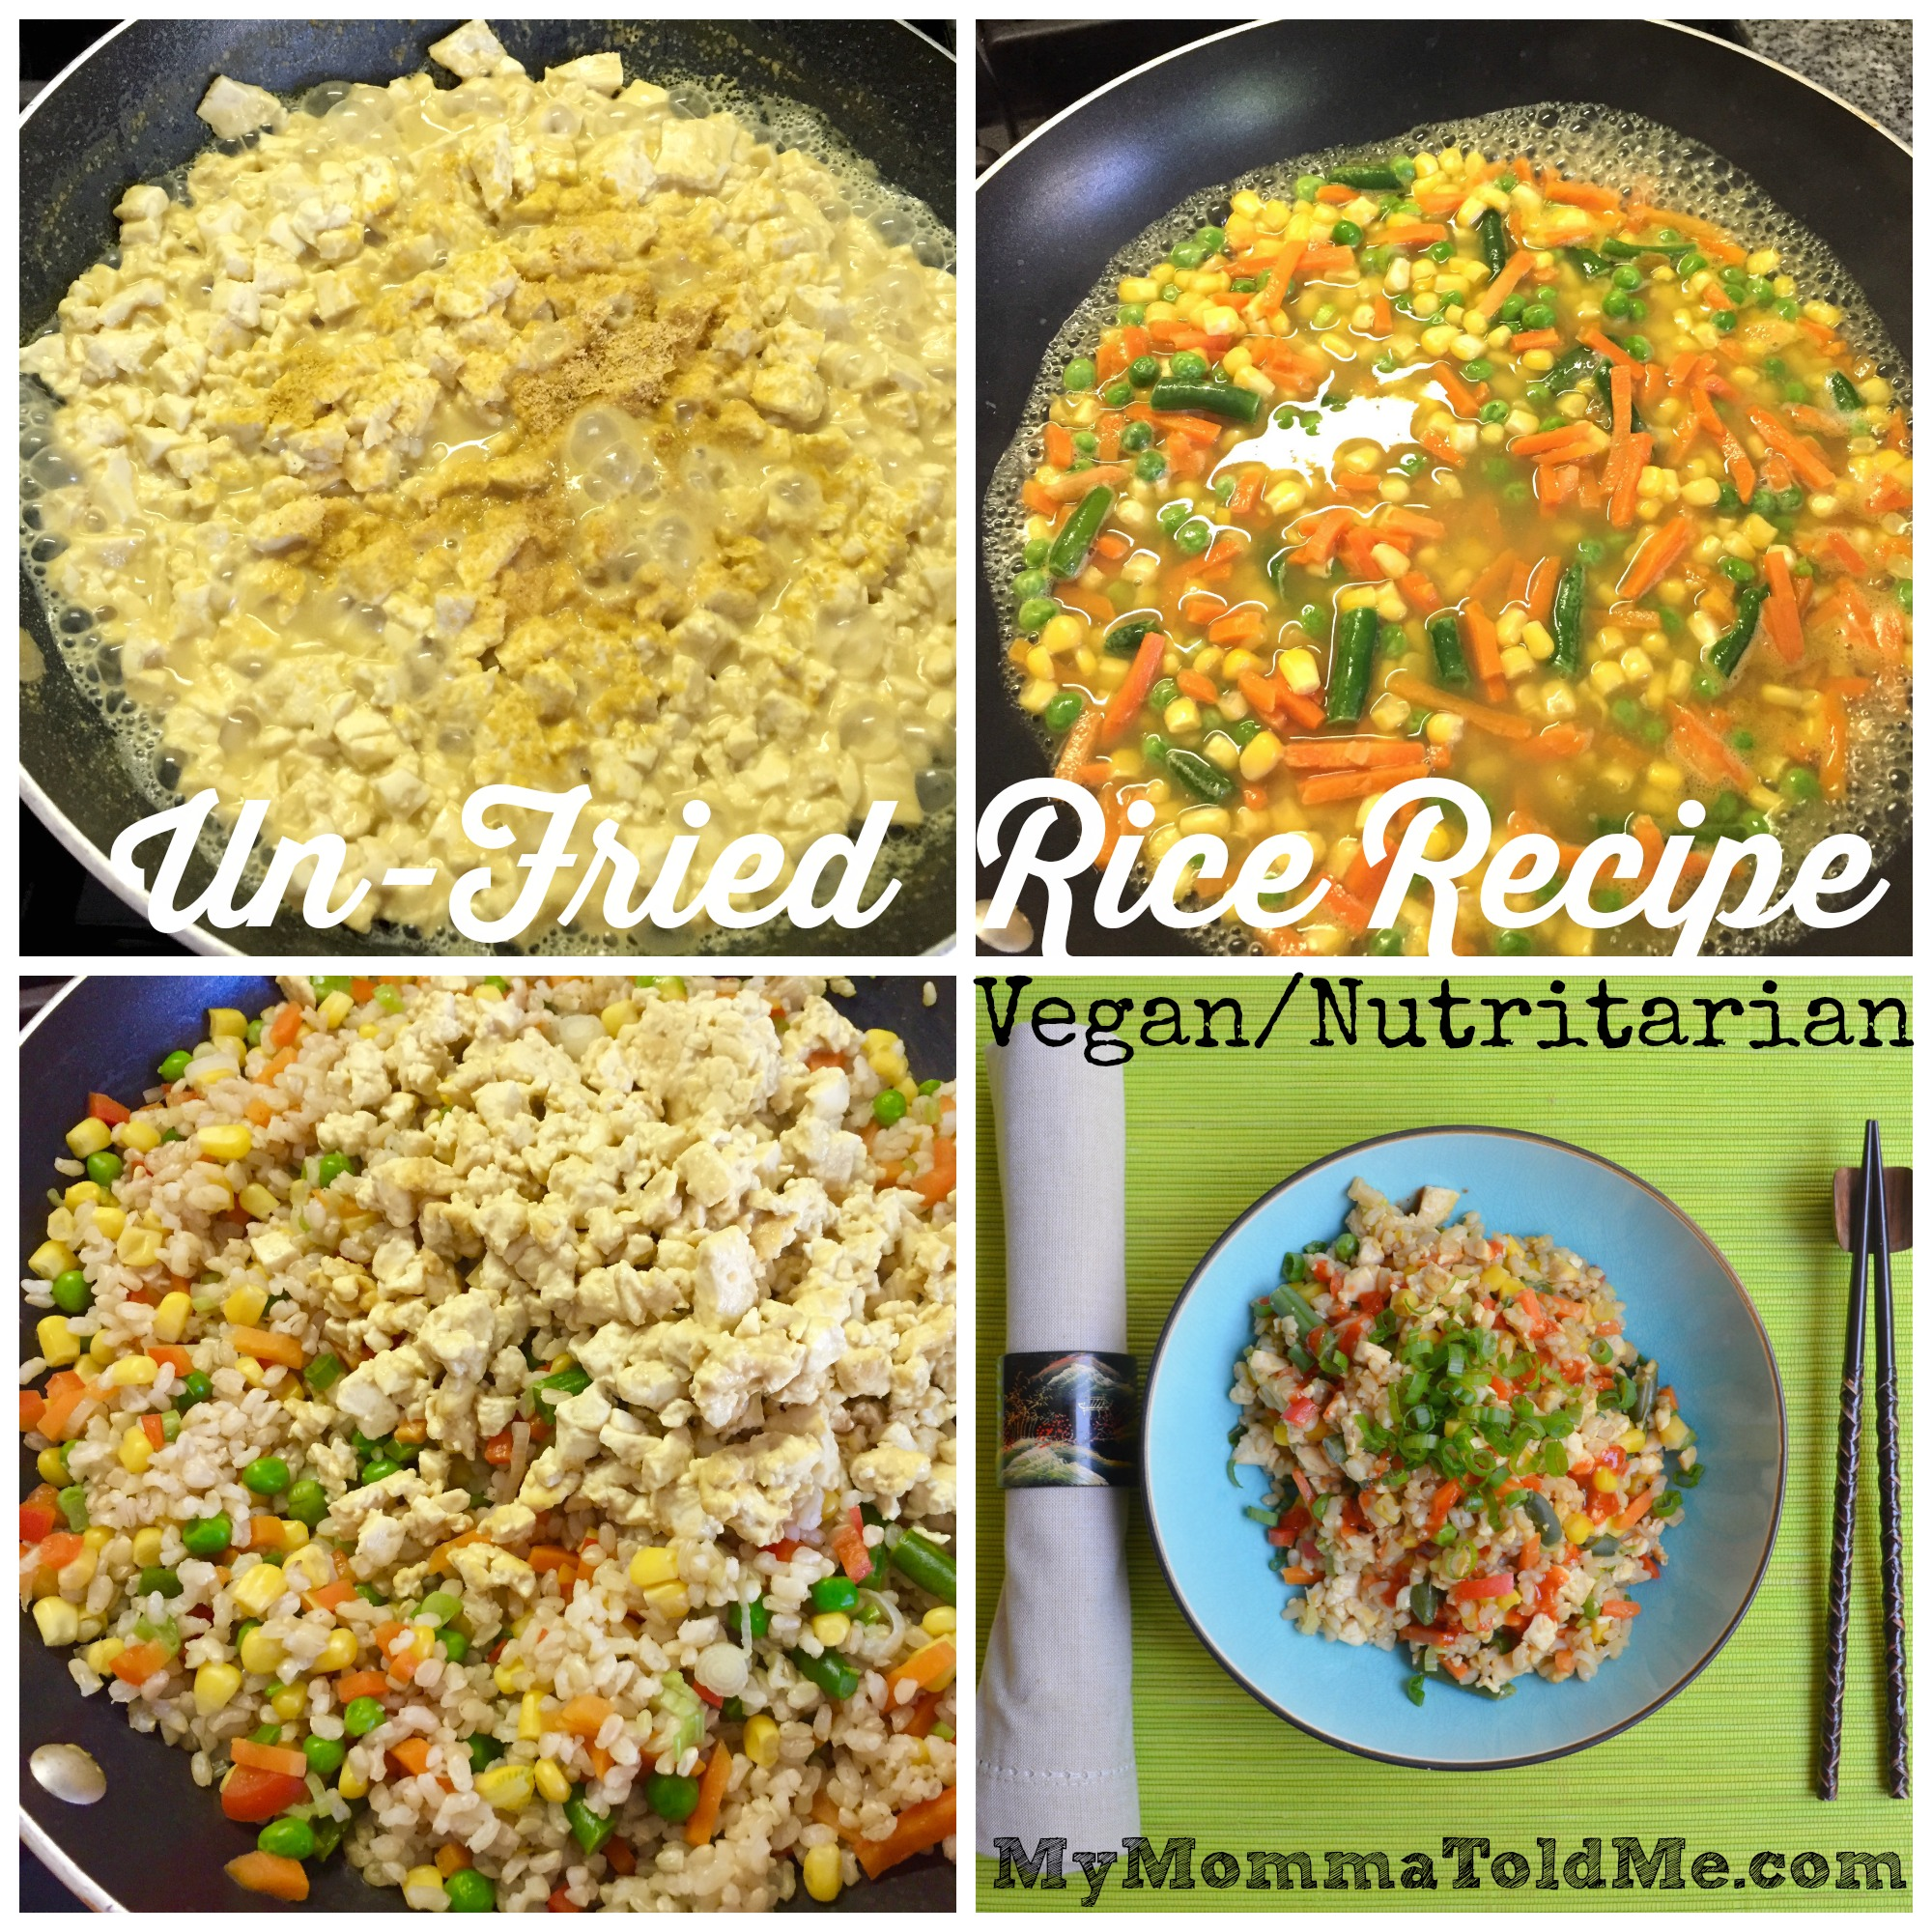 Eat to Live Program Un Fried Rice Recipe No Oil Dr Fuhrman Vegan Nutritarian